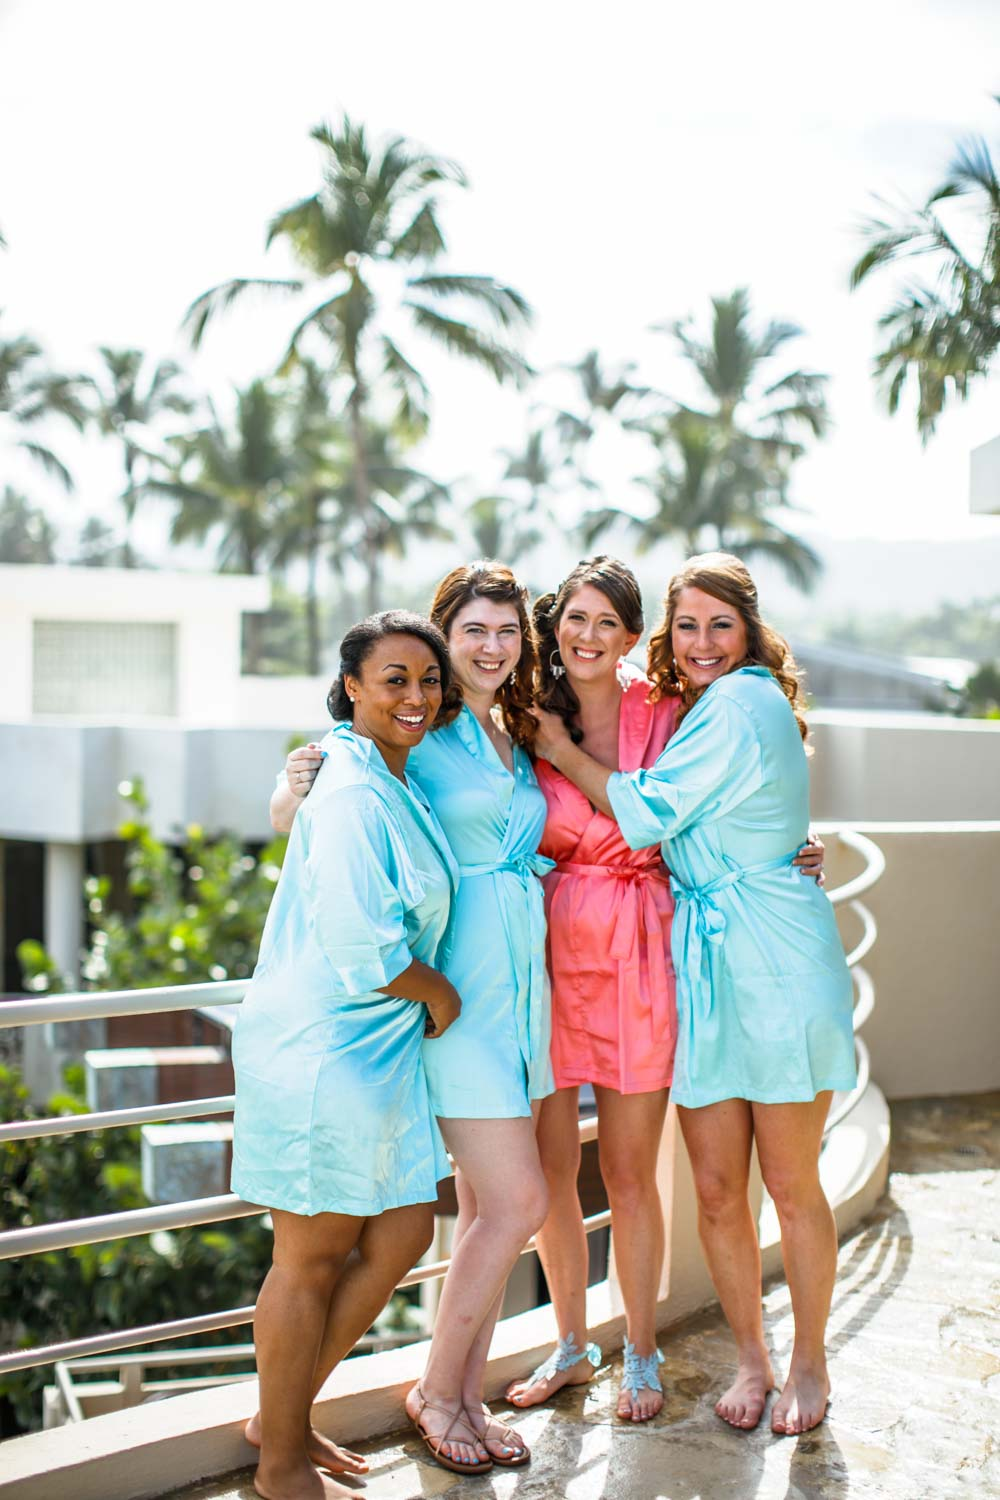 Bridesmaids pose for photographer on roof deck of wedding suite at Hotel Magnifico Cabarete Dominican Republic